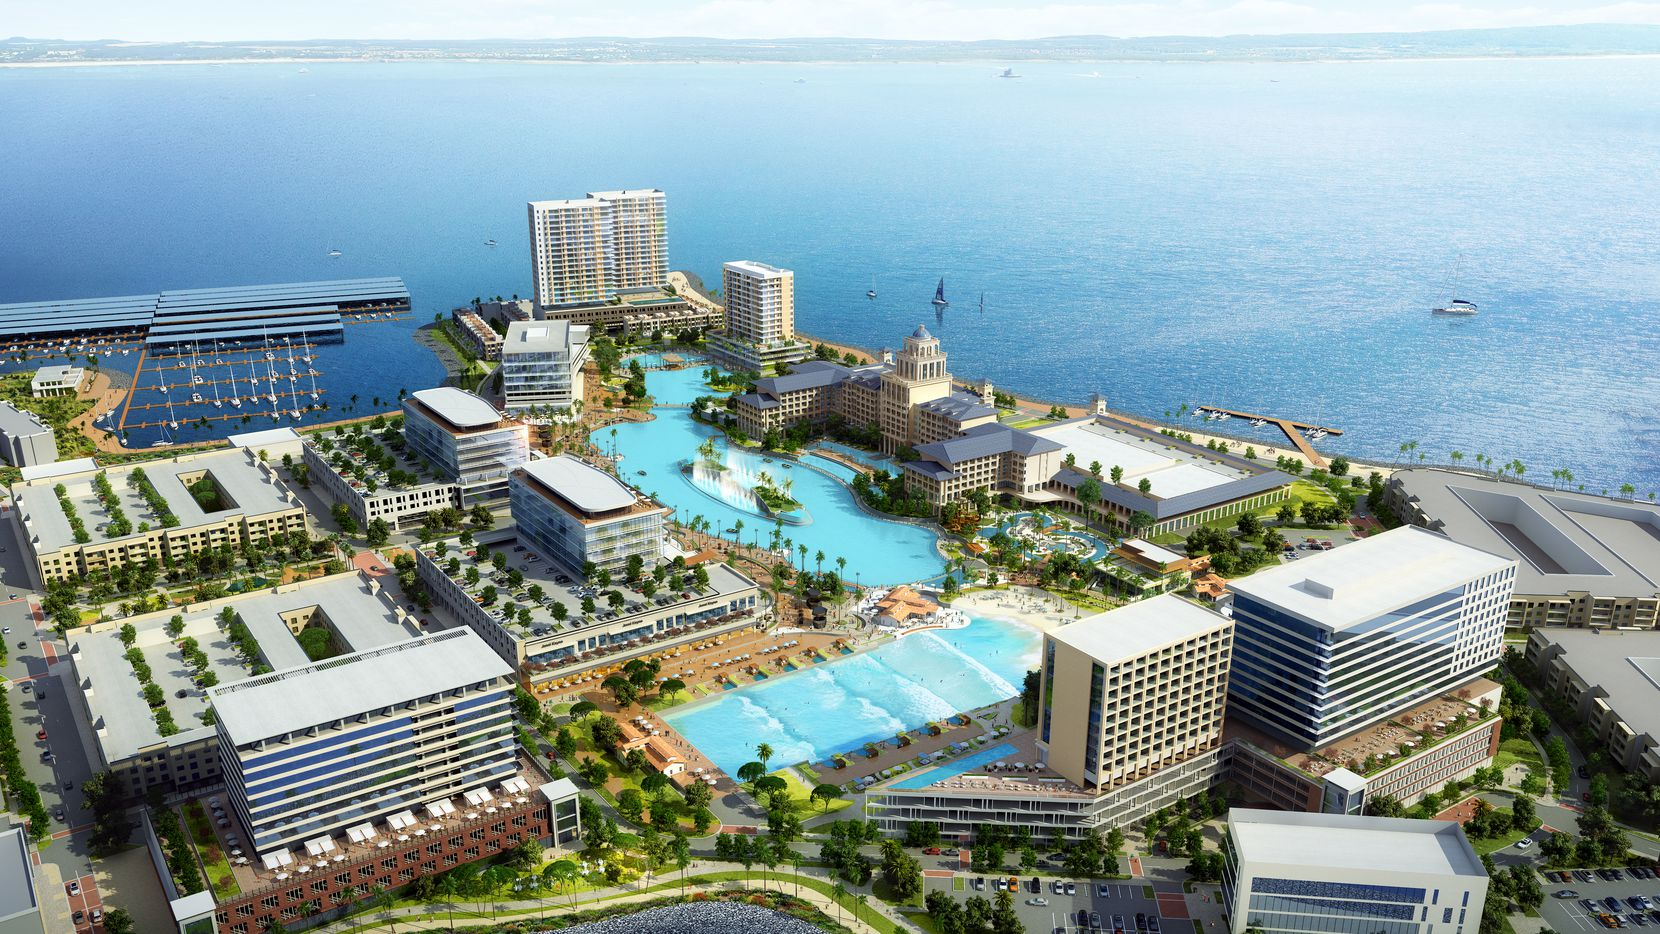 A new developer, Sapphire Bay Land Development, unveiled plans Thursday, Aug. 8, for a $1 billion lakefront development in Rowlett. It will include a 6.5-acre Crystal Lagoon,  a surf and beach club, and a 500-room resort hotel and conference center.